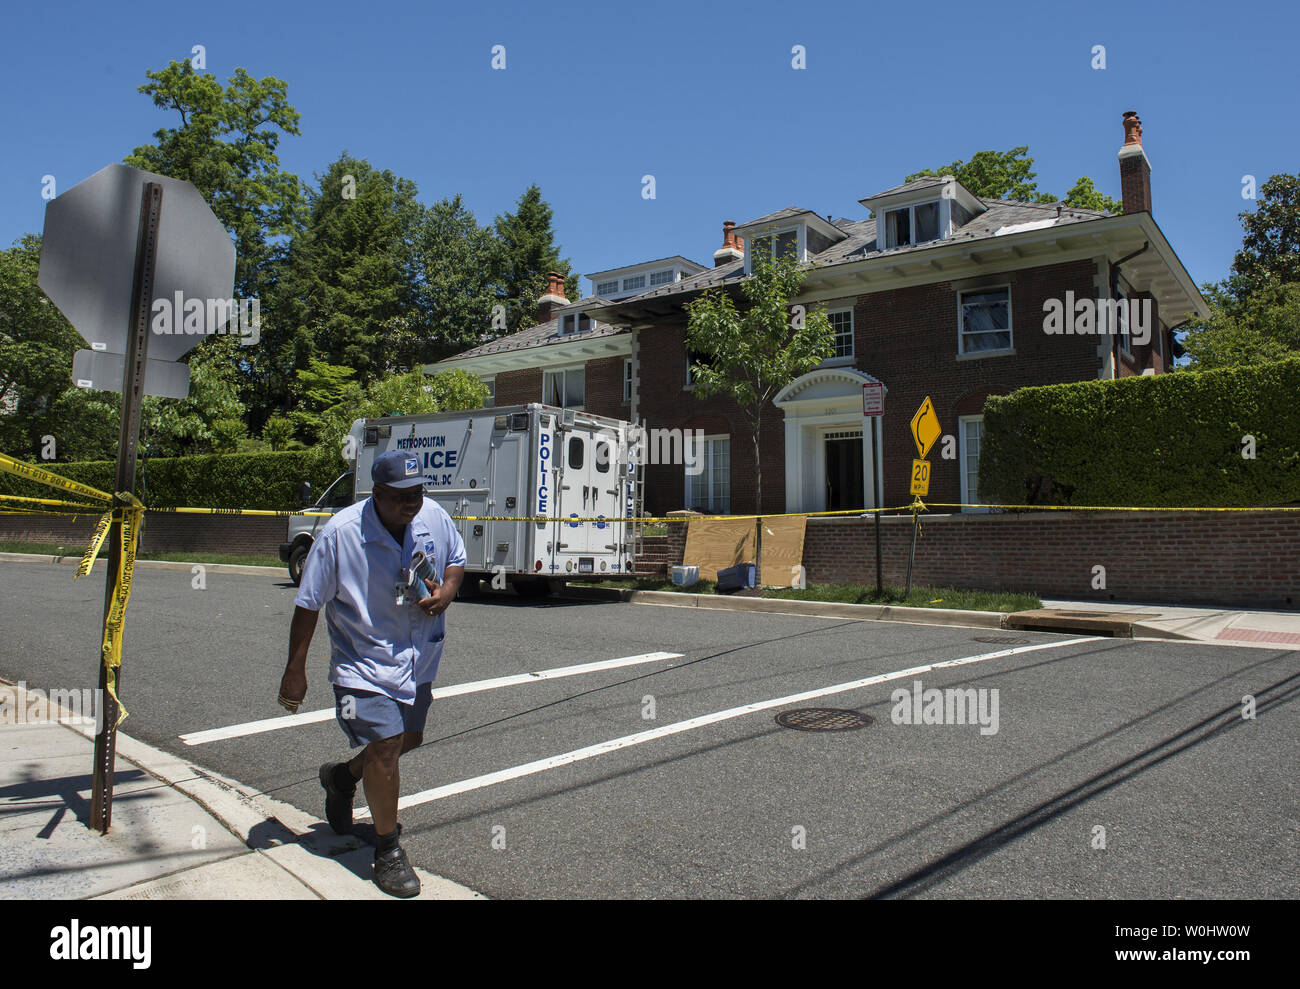 Mailman continues his route as police continue to inspect the $5 million house in the fashionable Northwest district of Washington, DC on May 23, 2015, where four people were brutally murdered after an apparent ransom was paid on May 14, 2015.  Police say captured suspect Daron Dylon Wint appeared to have accomplices in the murder of Savvas Savopoulos, his wife Amy, son Philip and housekeeper Veralicia Figueroa.  The lead on Wint apparently came from his DNA on a pizza crust.  Photo by Pat Benic/UPI - Stock Image